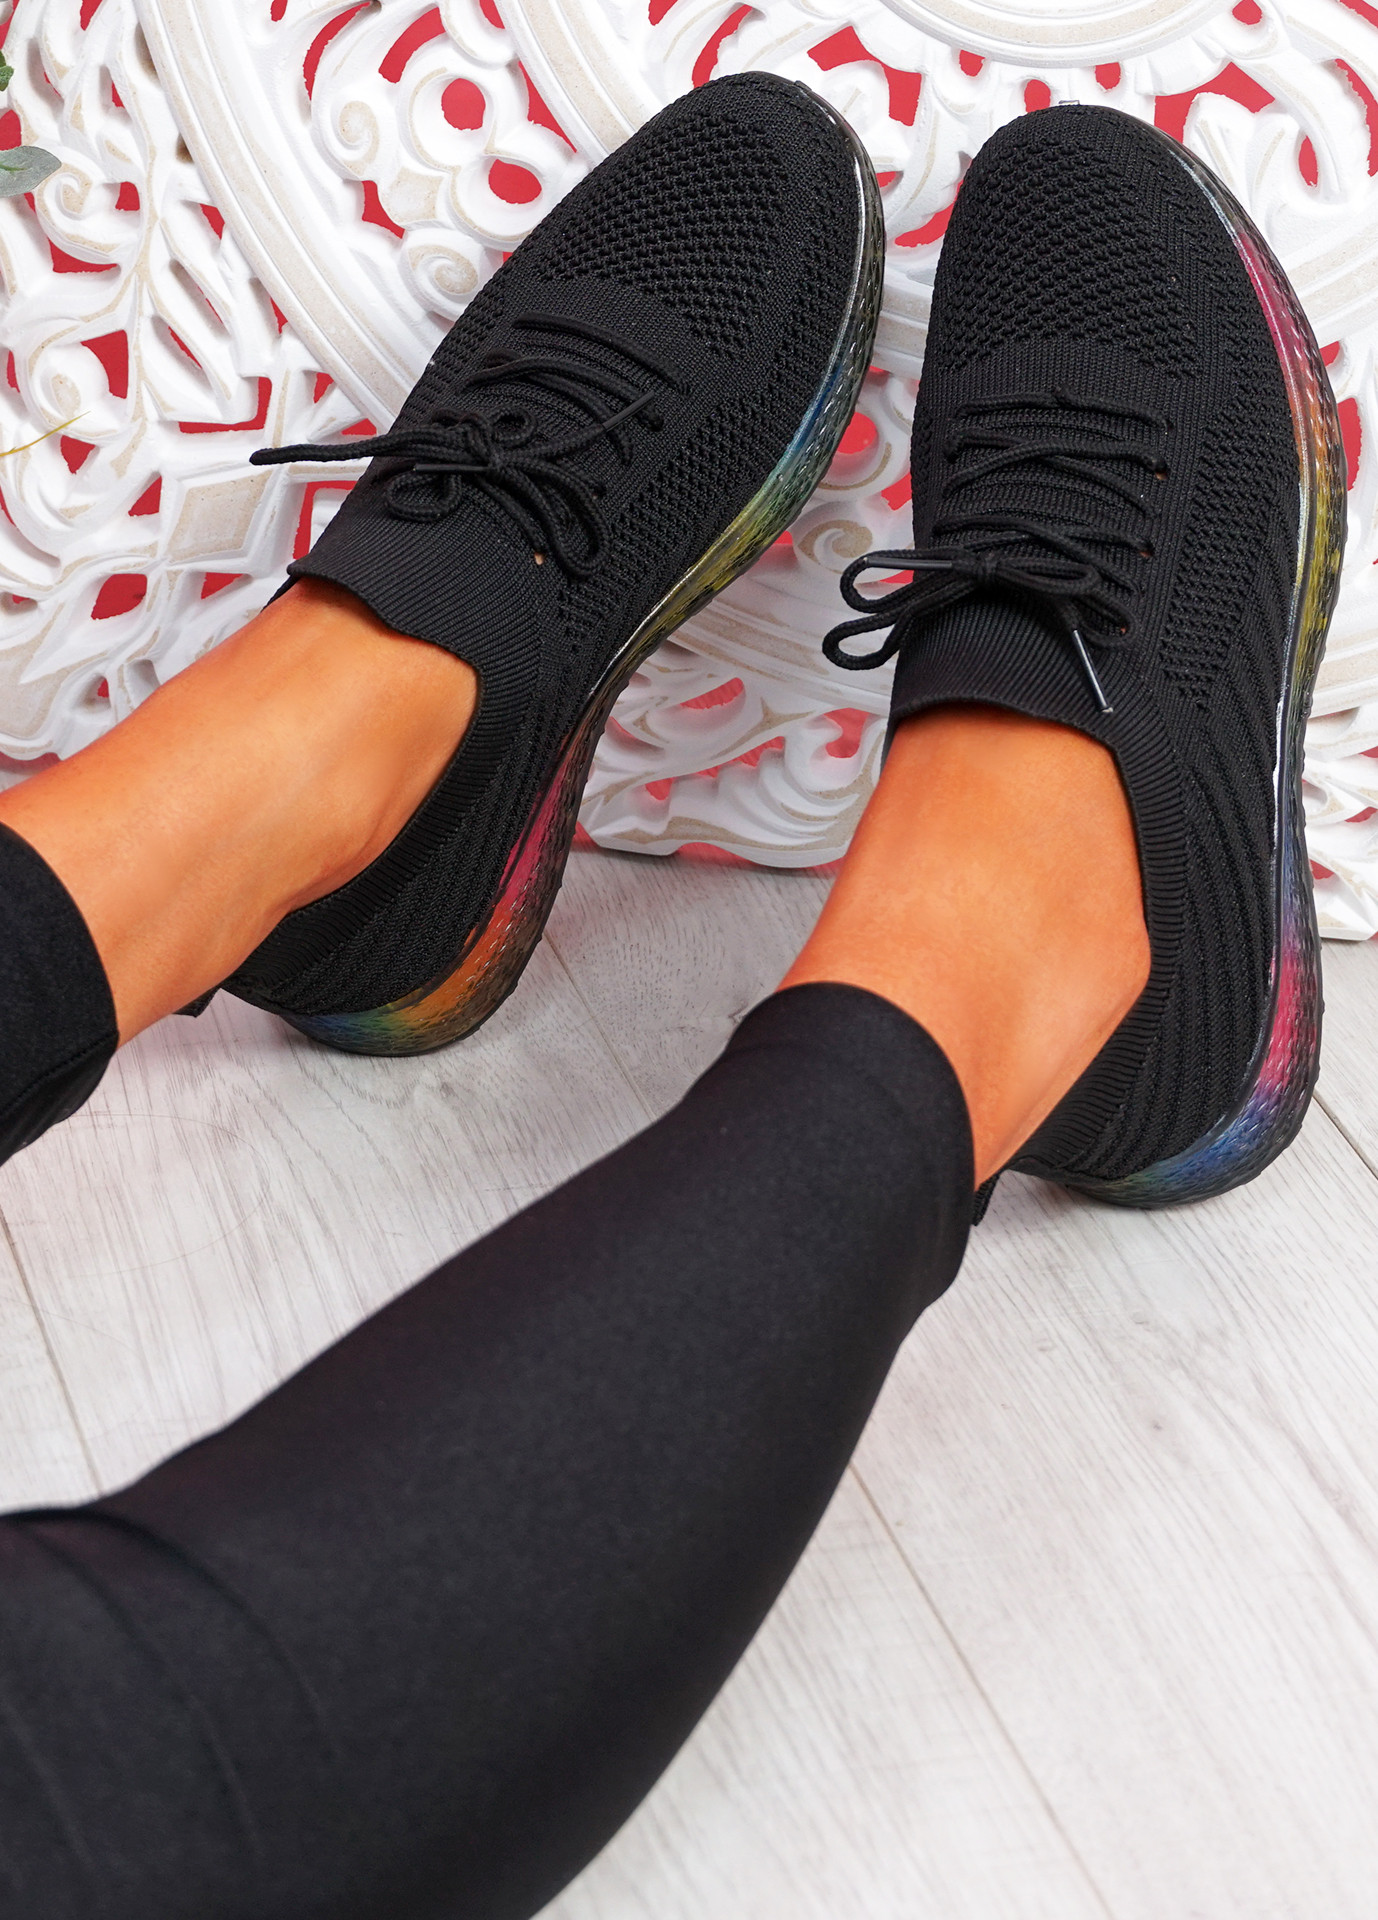 Nolly Black Knit Rainbow Trainers